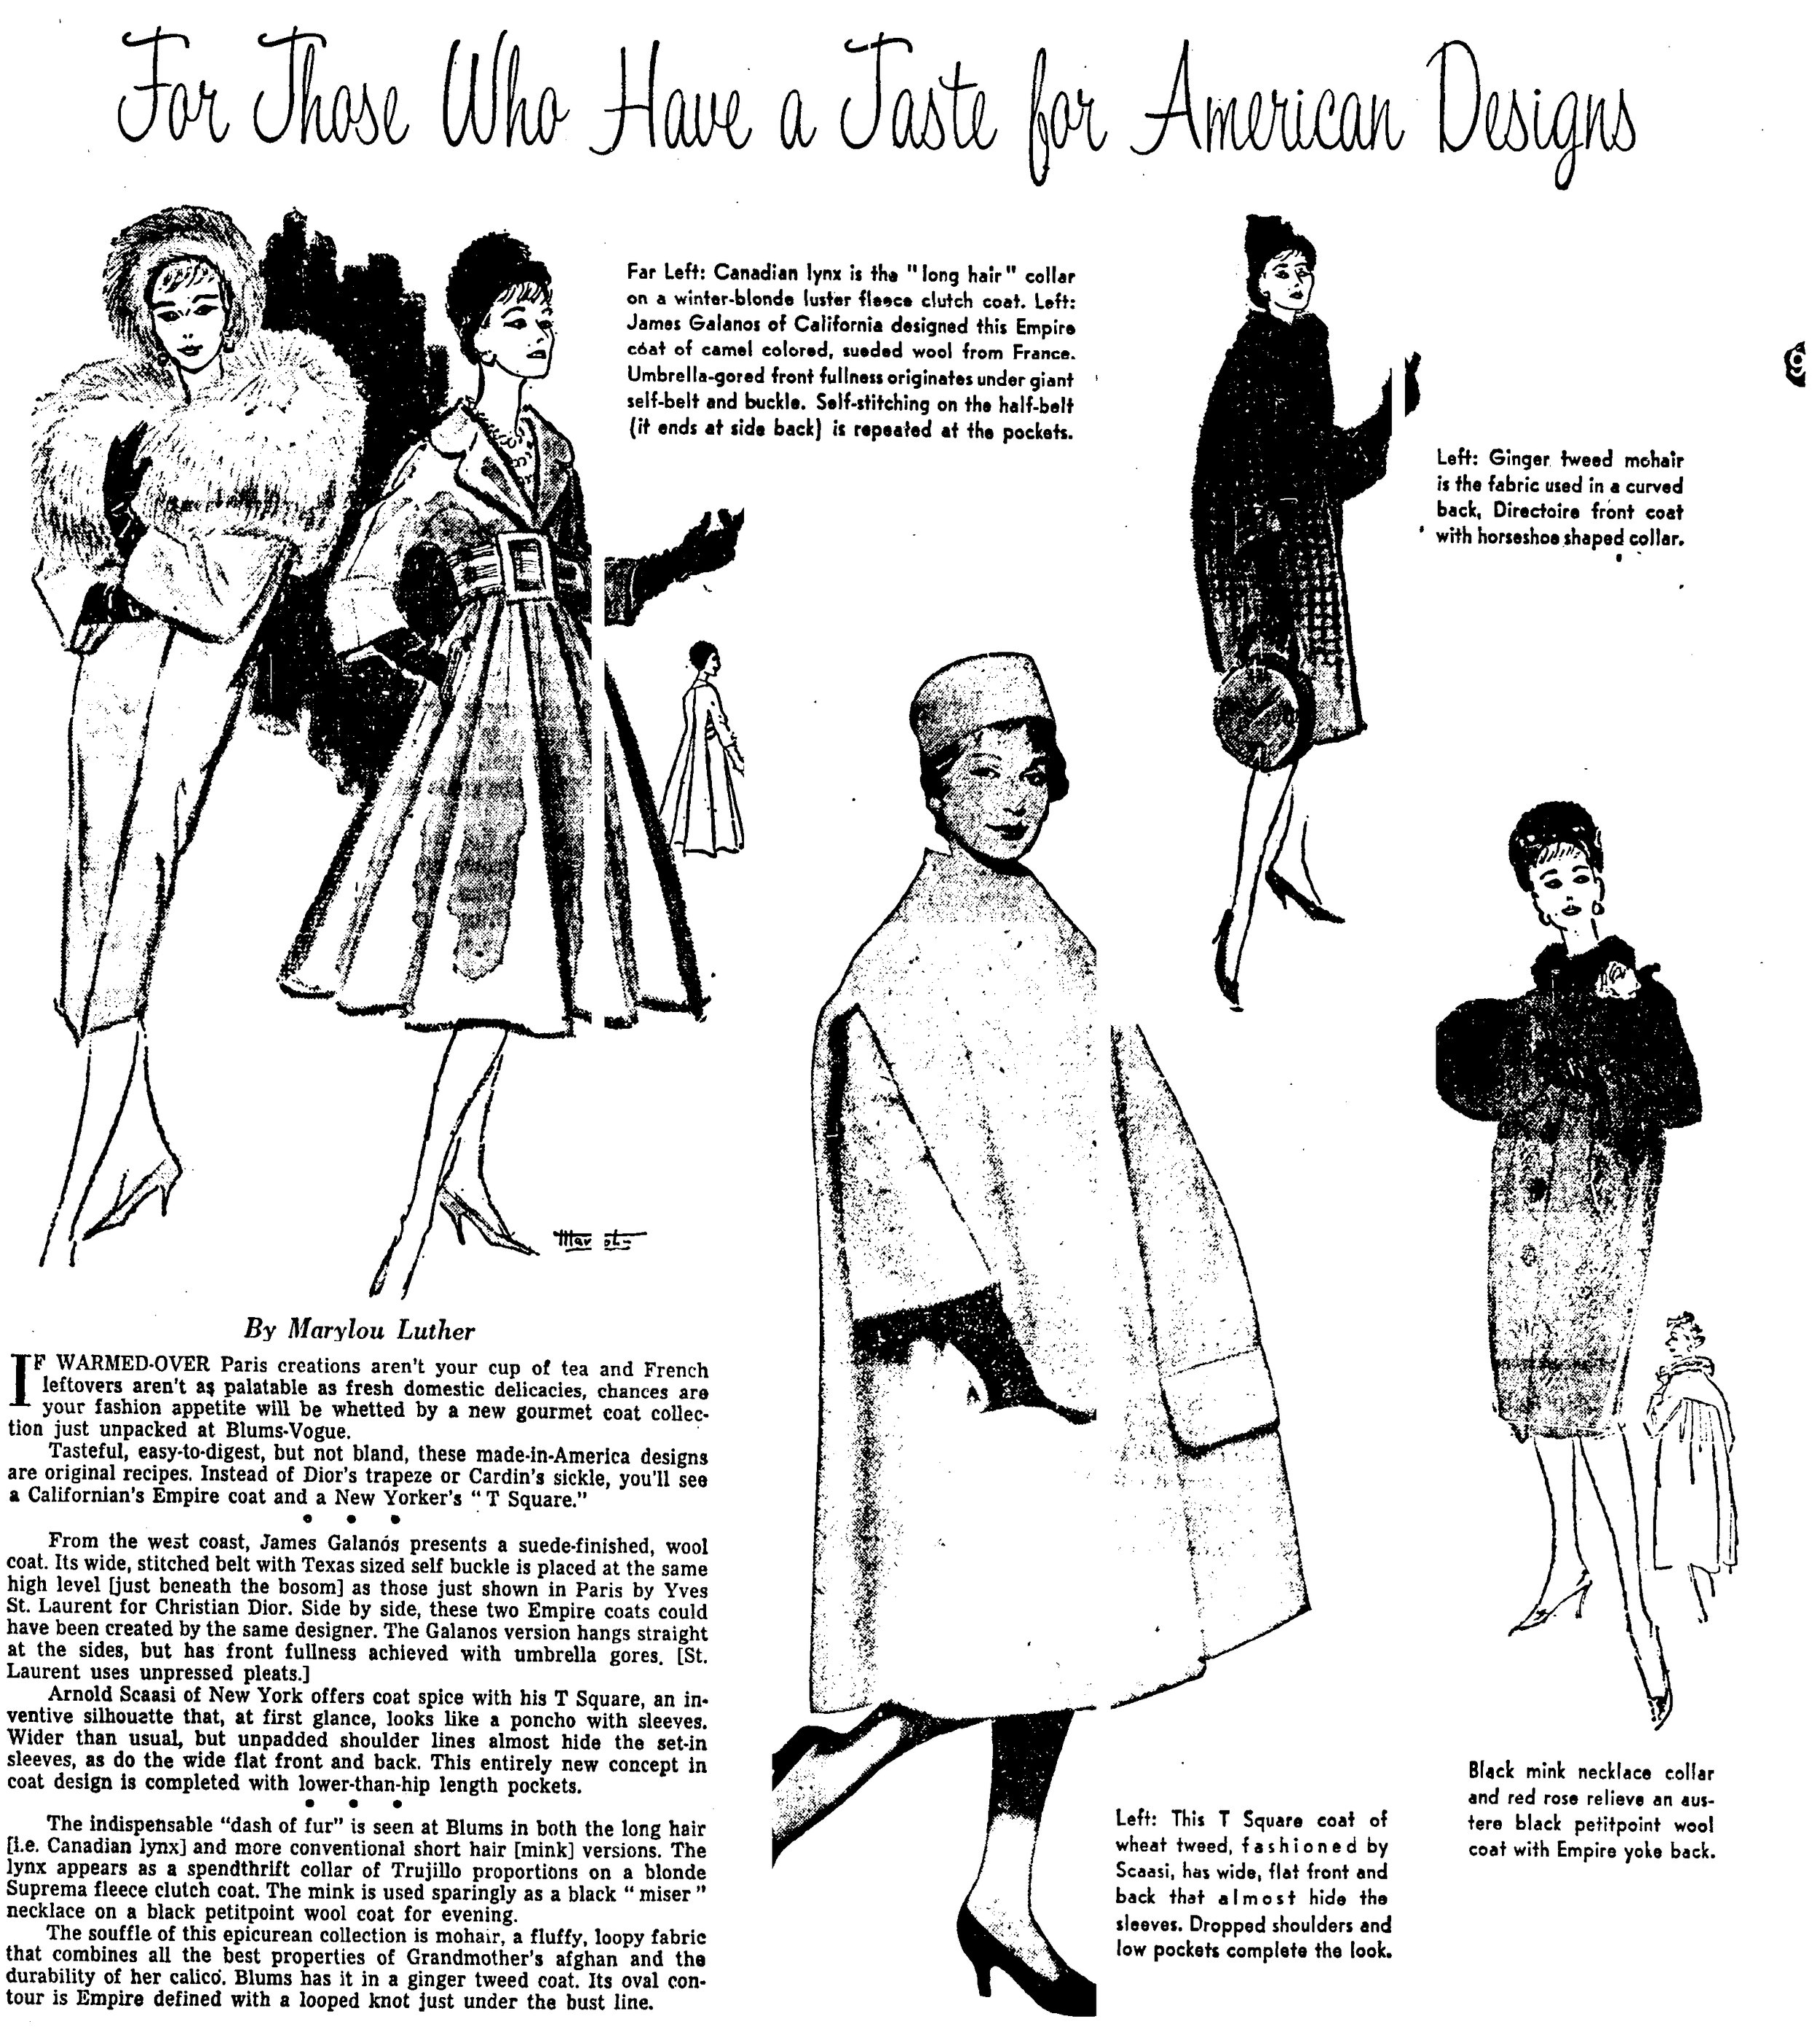 An article by Marylou for the Chicago Tribune from 1958.